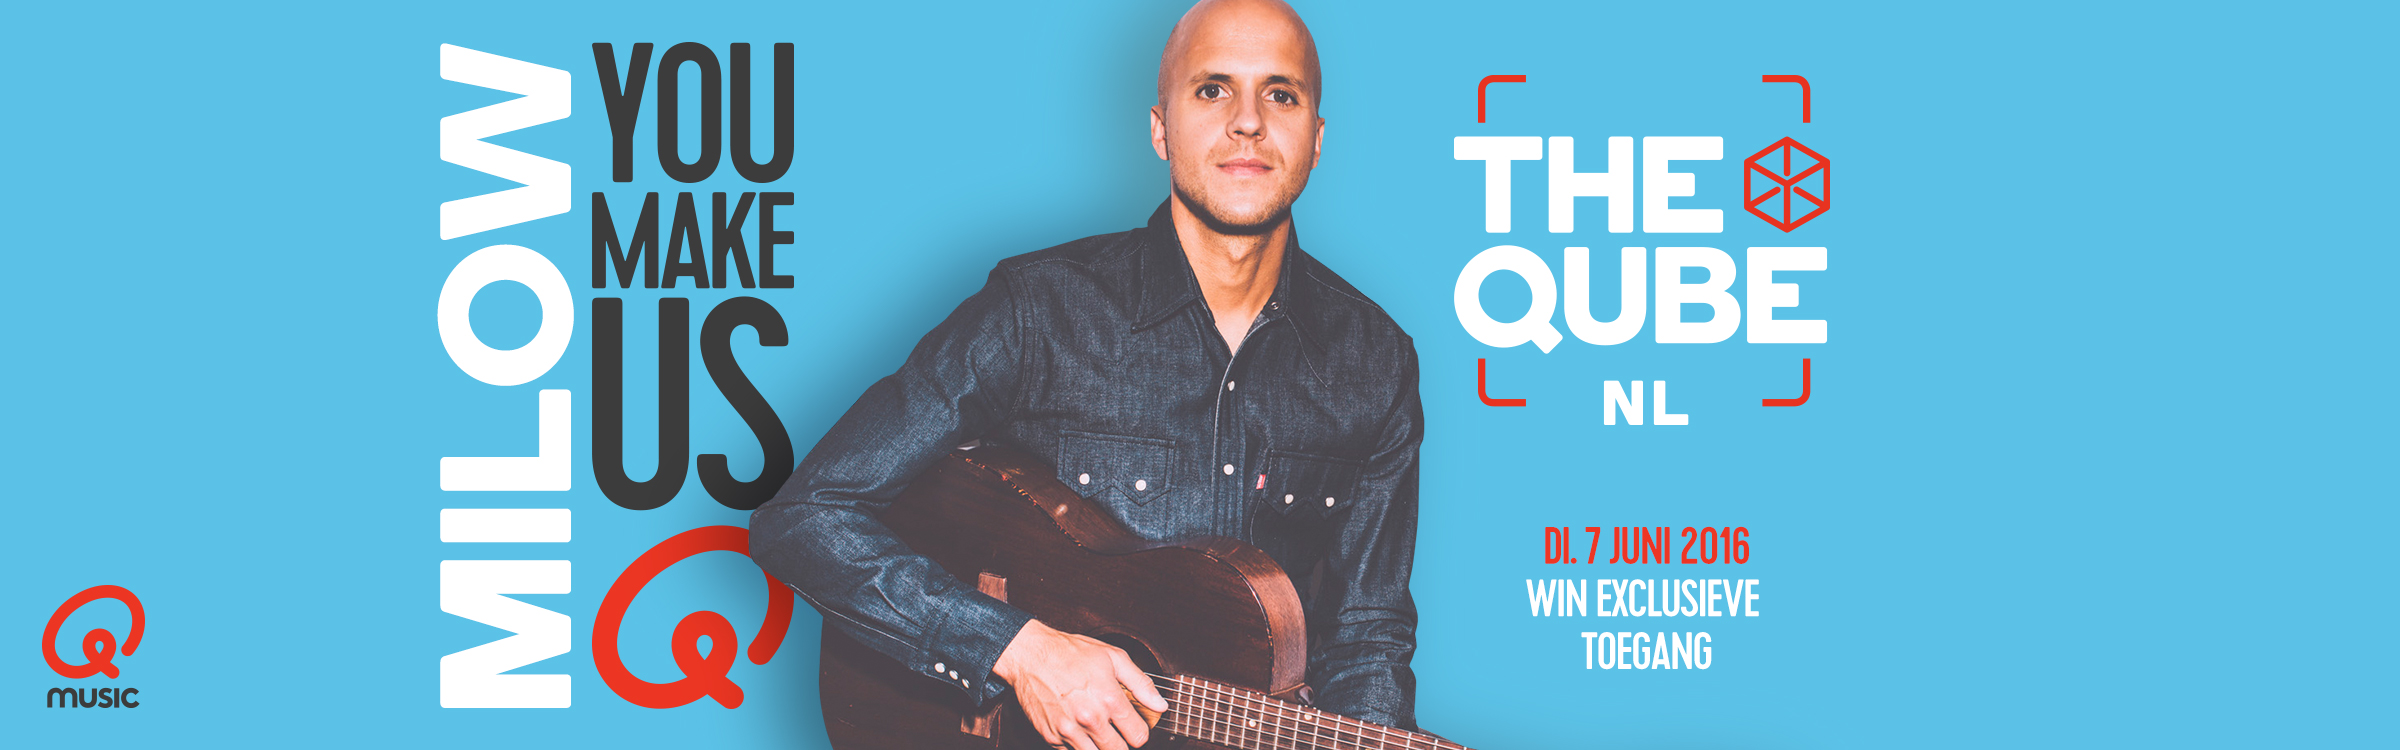 Qmusic actionheader milow